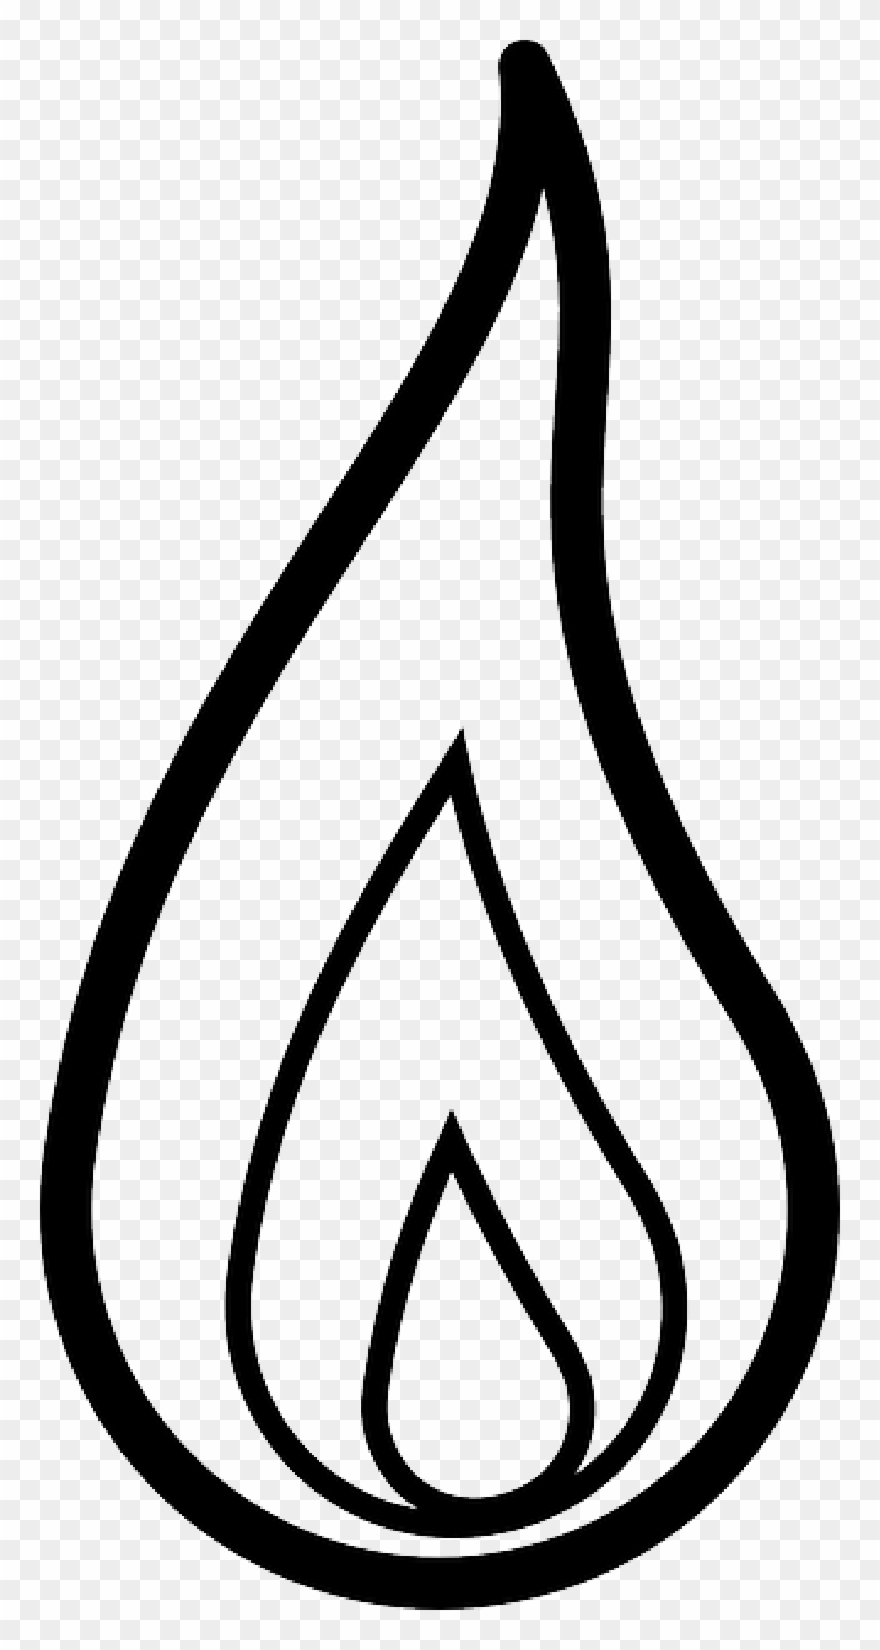 Drawn Candle Outline - Clipart Flame - Png Download